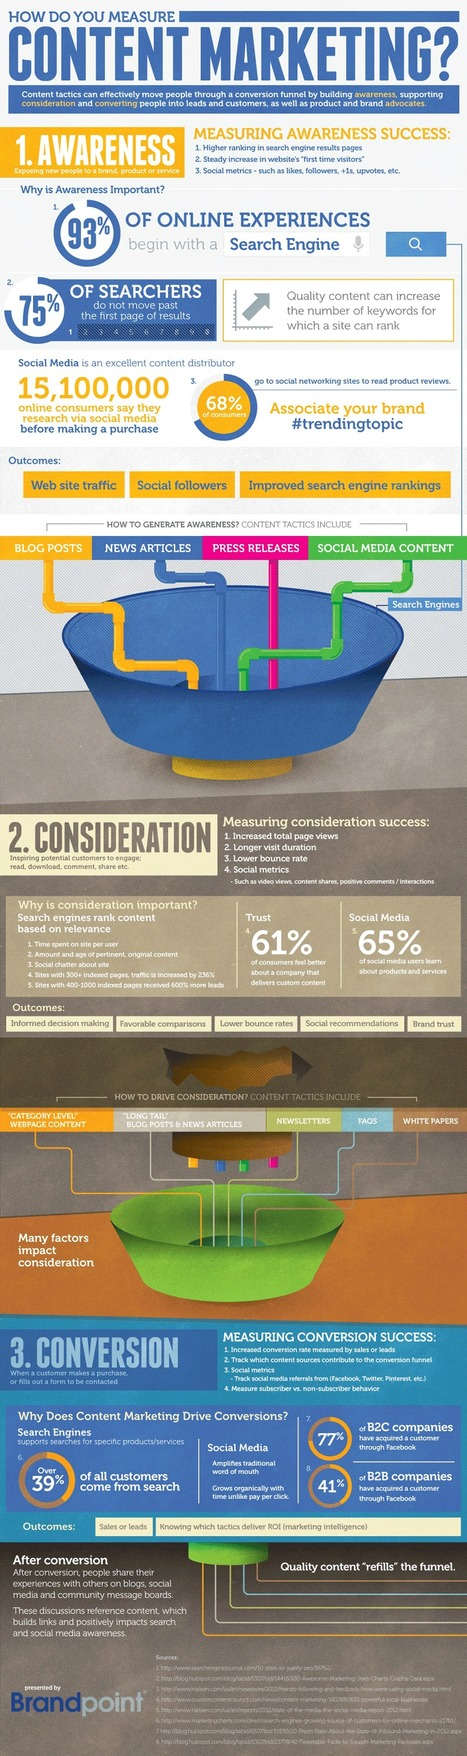 How to Measure Content Marketing Success | Infographic | e-commerce & social media | Scoop.it